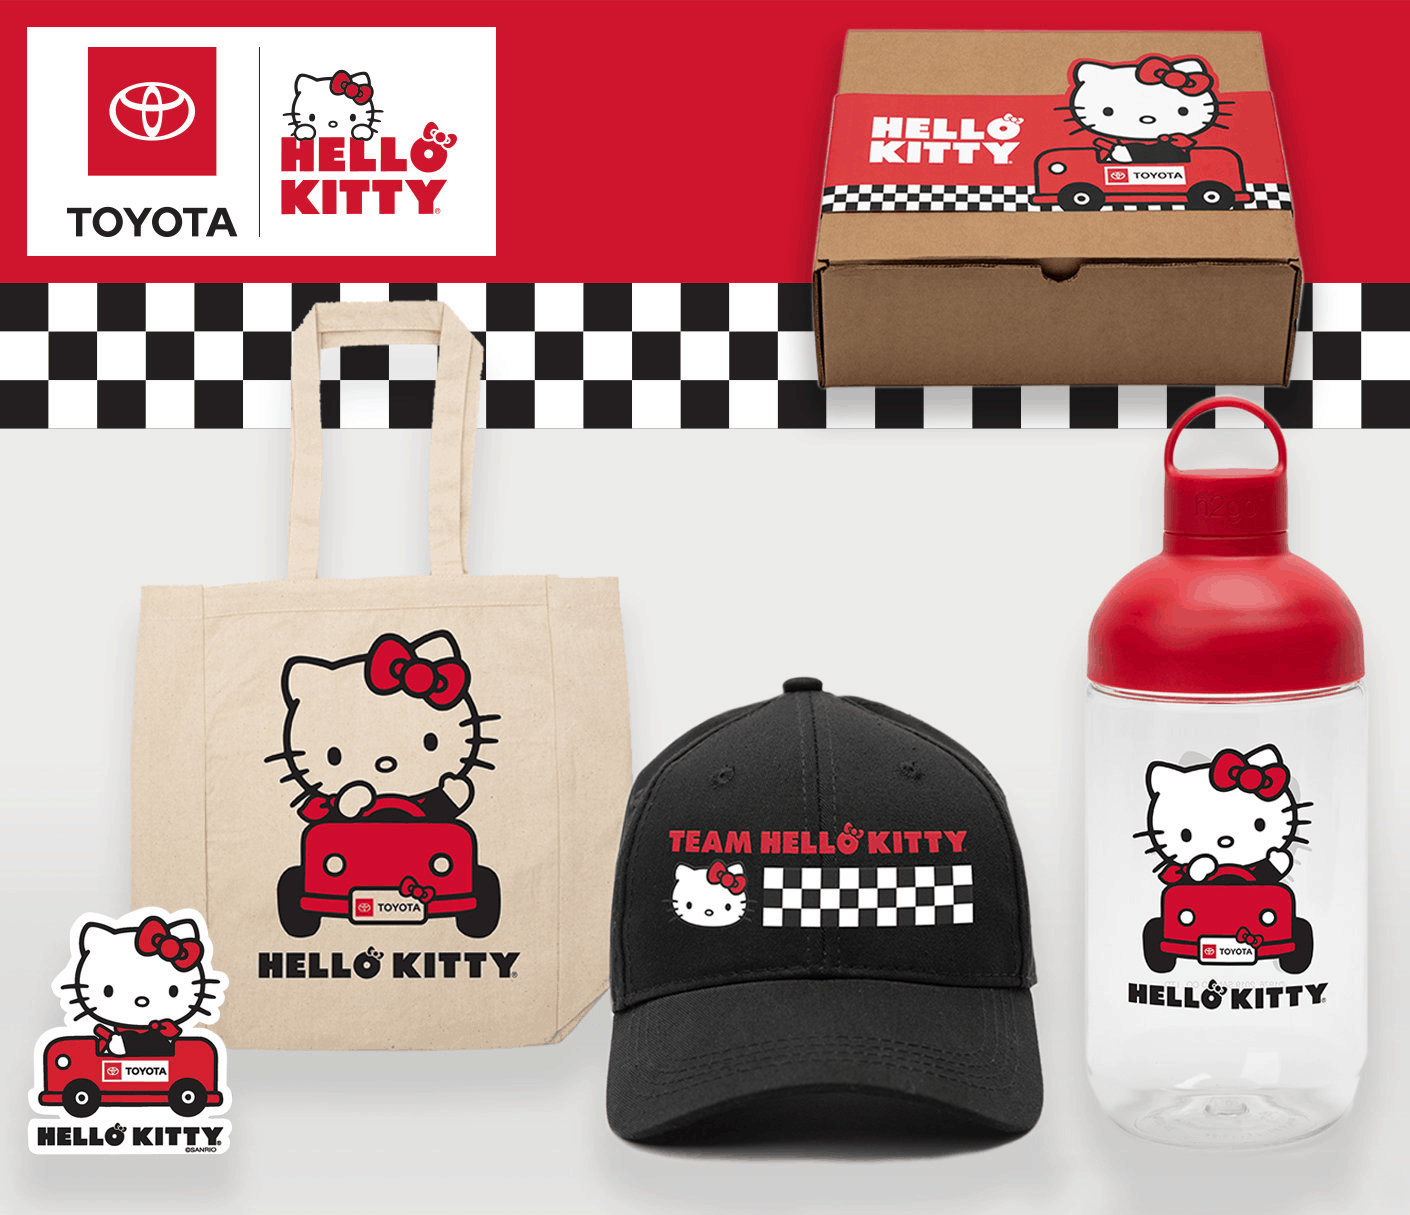 Toyota x Hello Kitty Big Smile Gift Box Available Now!